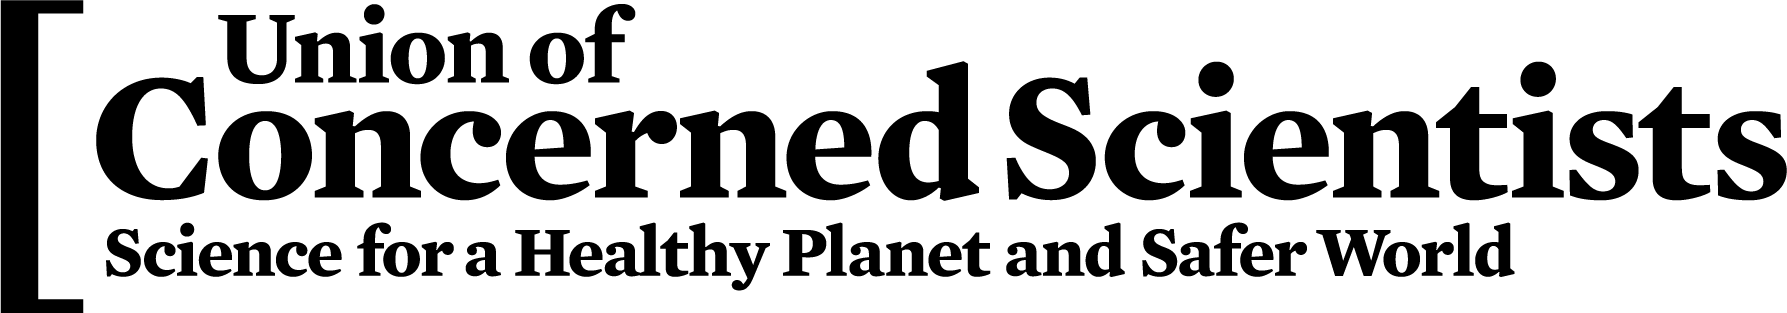 Union of Concerned Scientists. Science for a healthy planet and safer world.